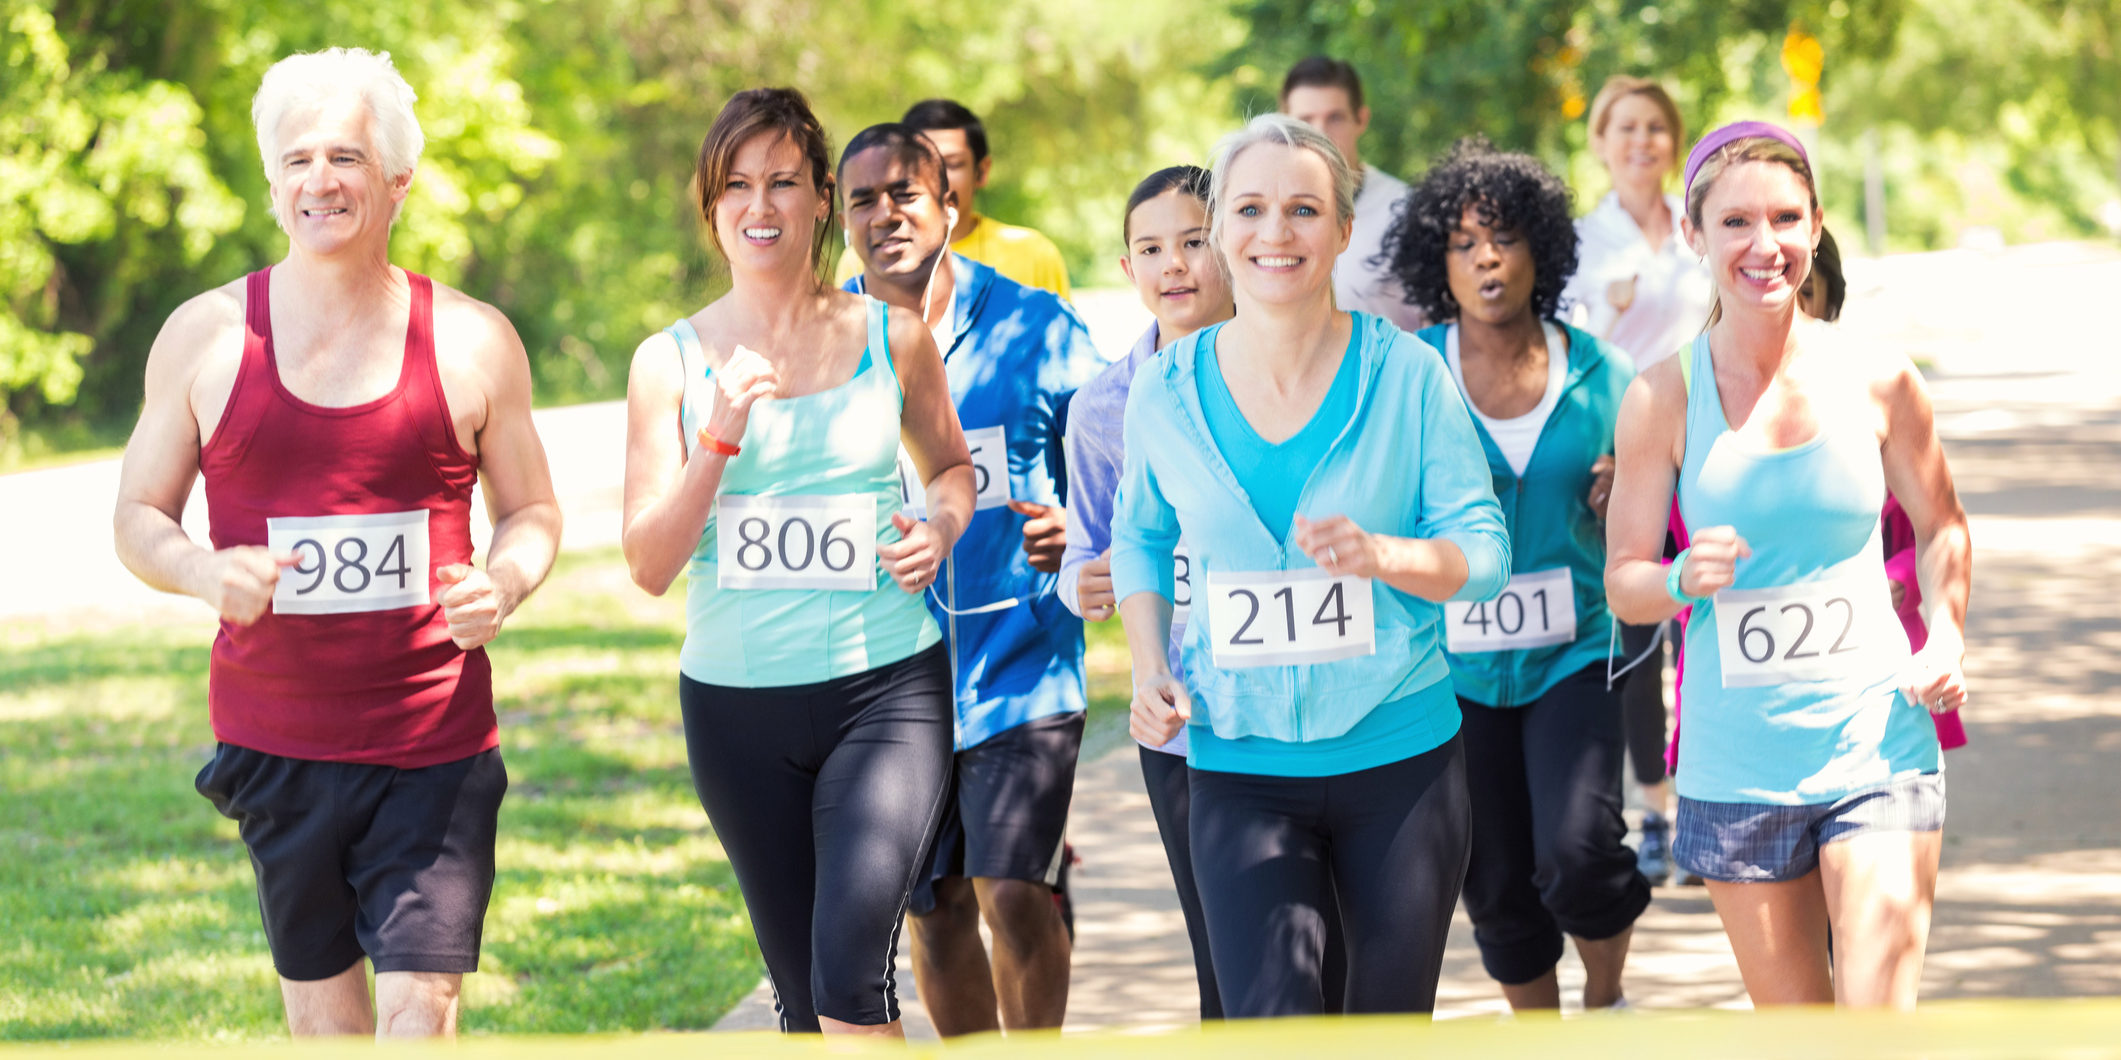 Diverse adults are smiling as they approach finish line during marathon or 5k race for charity. Senior adults, mature adults, mid and young adults are all participating in race at park on sunny day. They are wearing athletic clothing and race contestant numbers on their shirts.